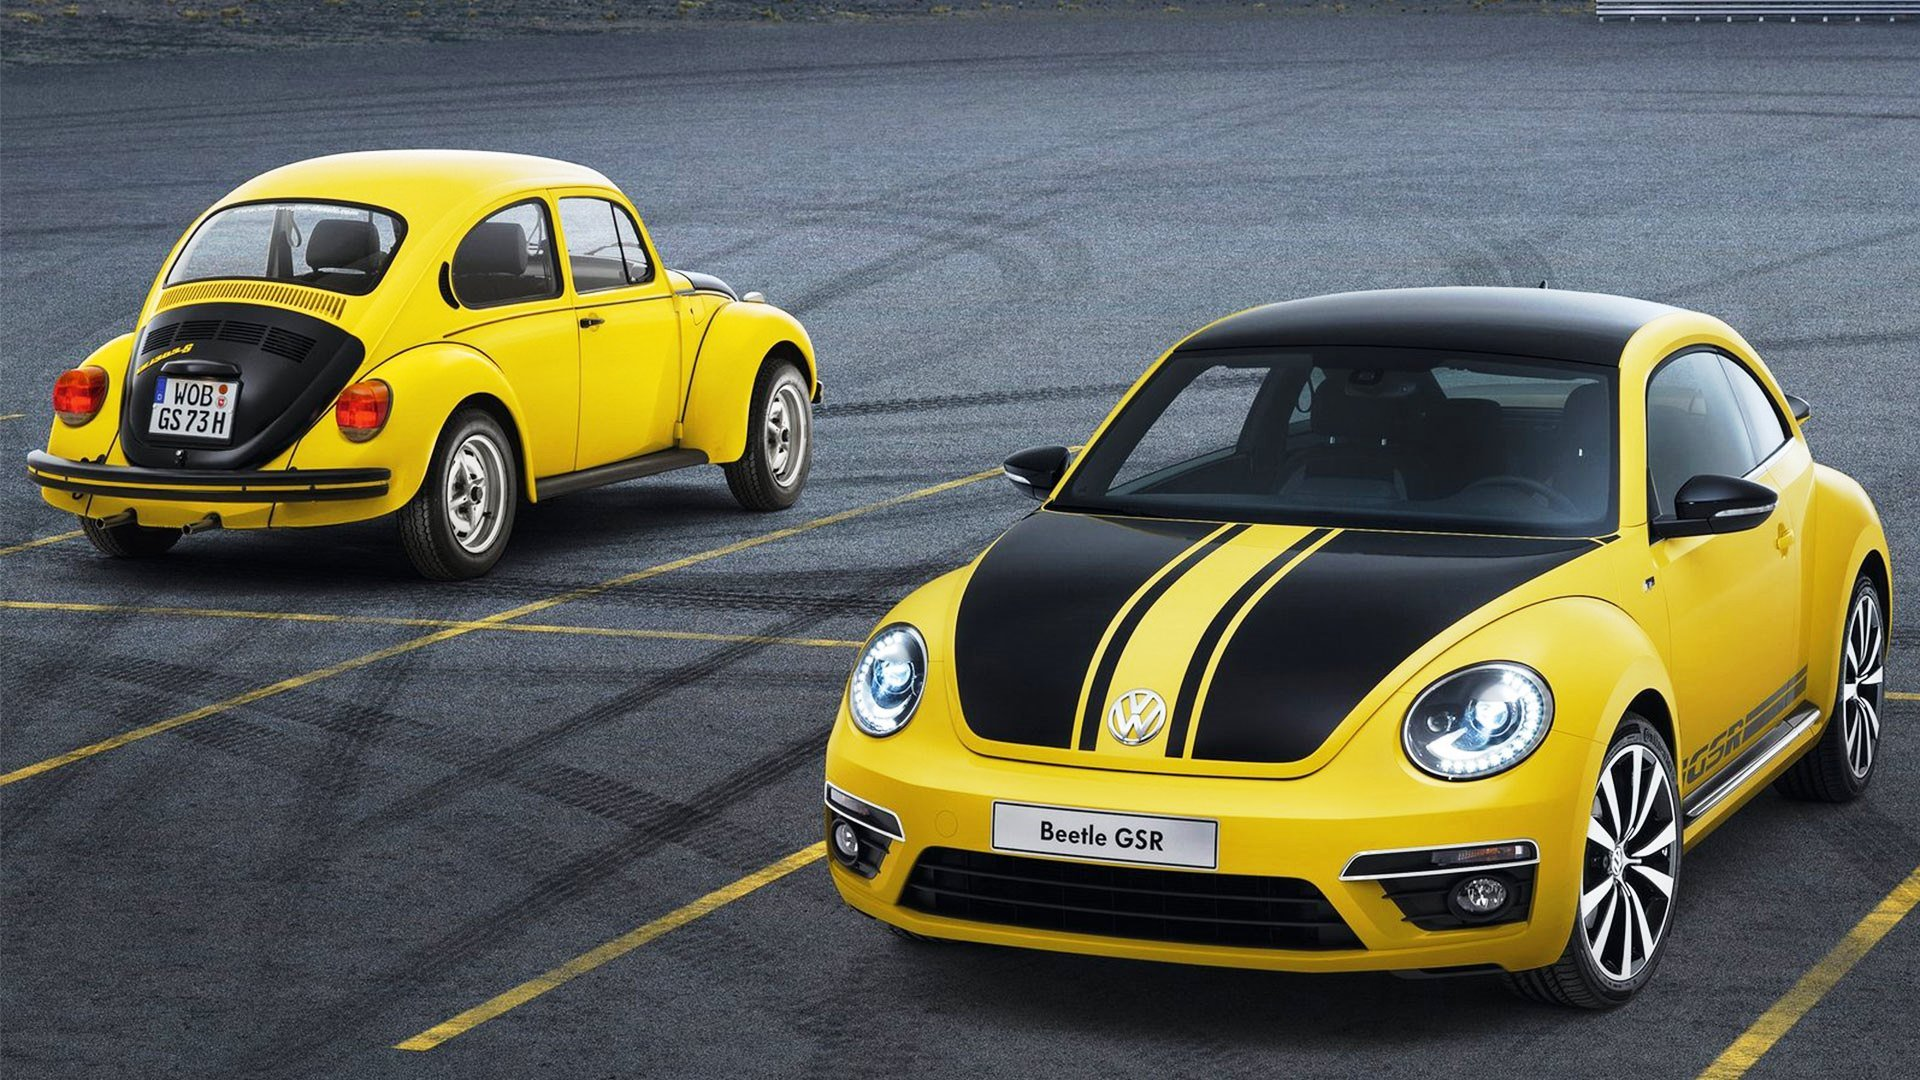 2013 Volkswagen Beetle GSR Wallpaper HD   Freak Wheel 1920x1080